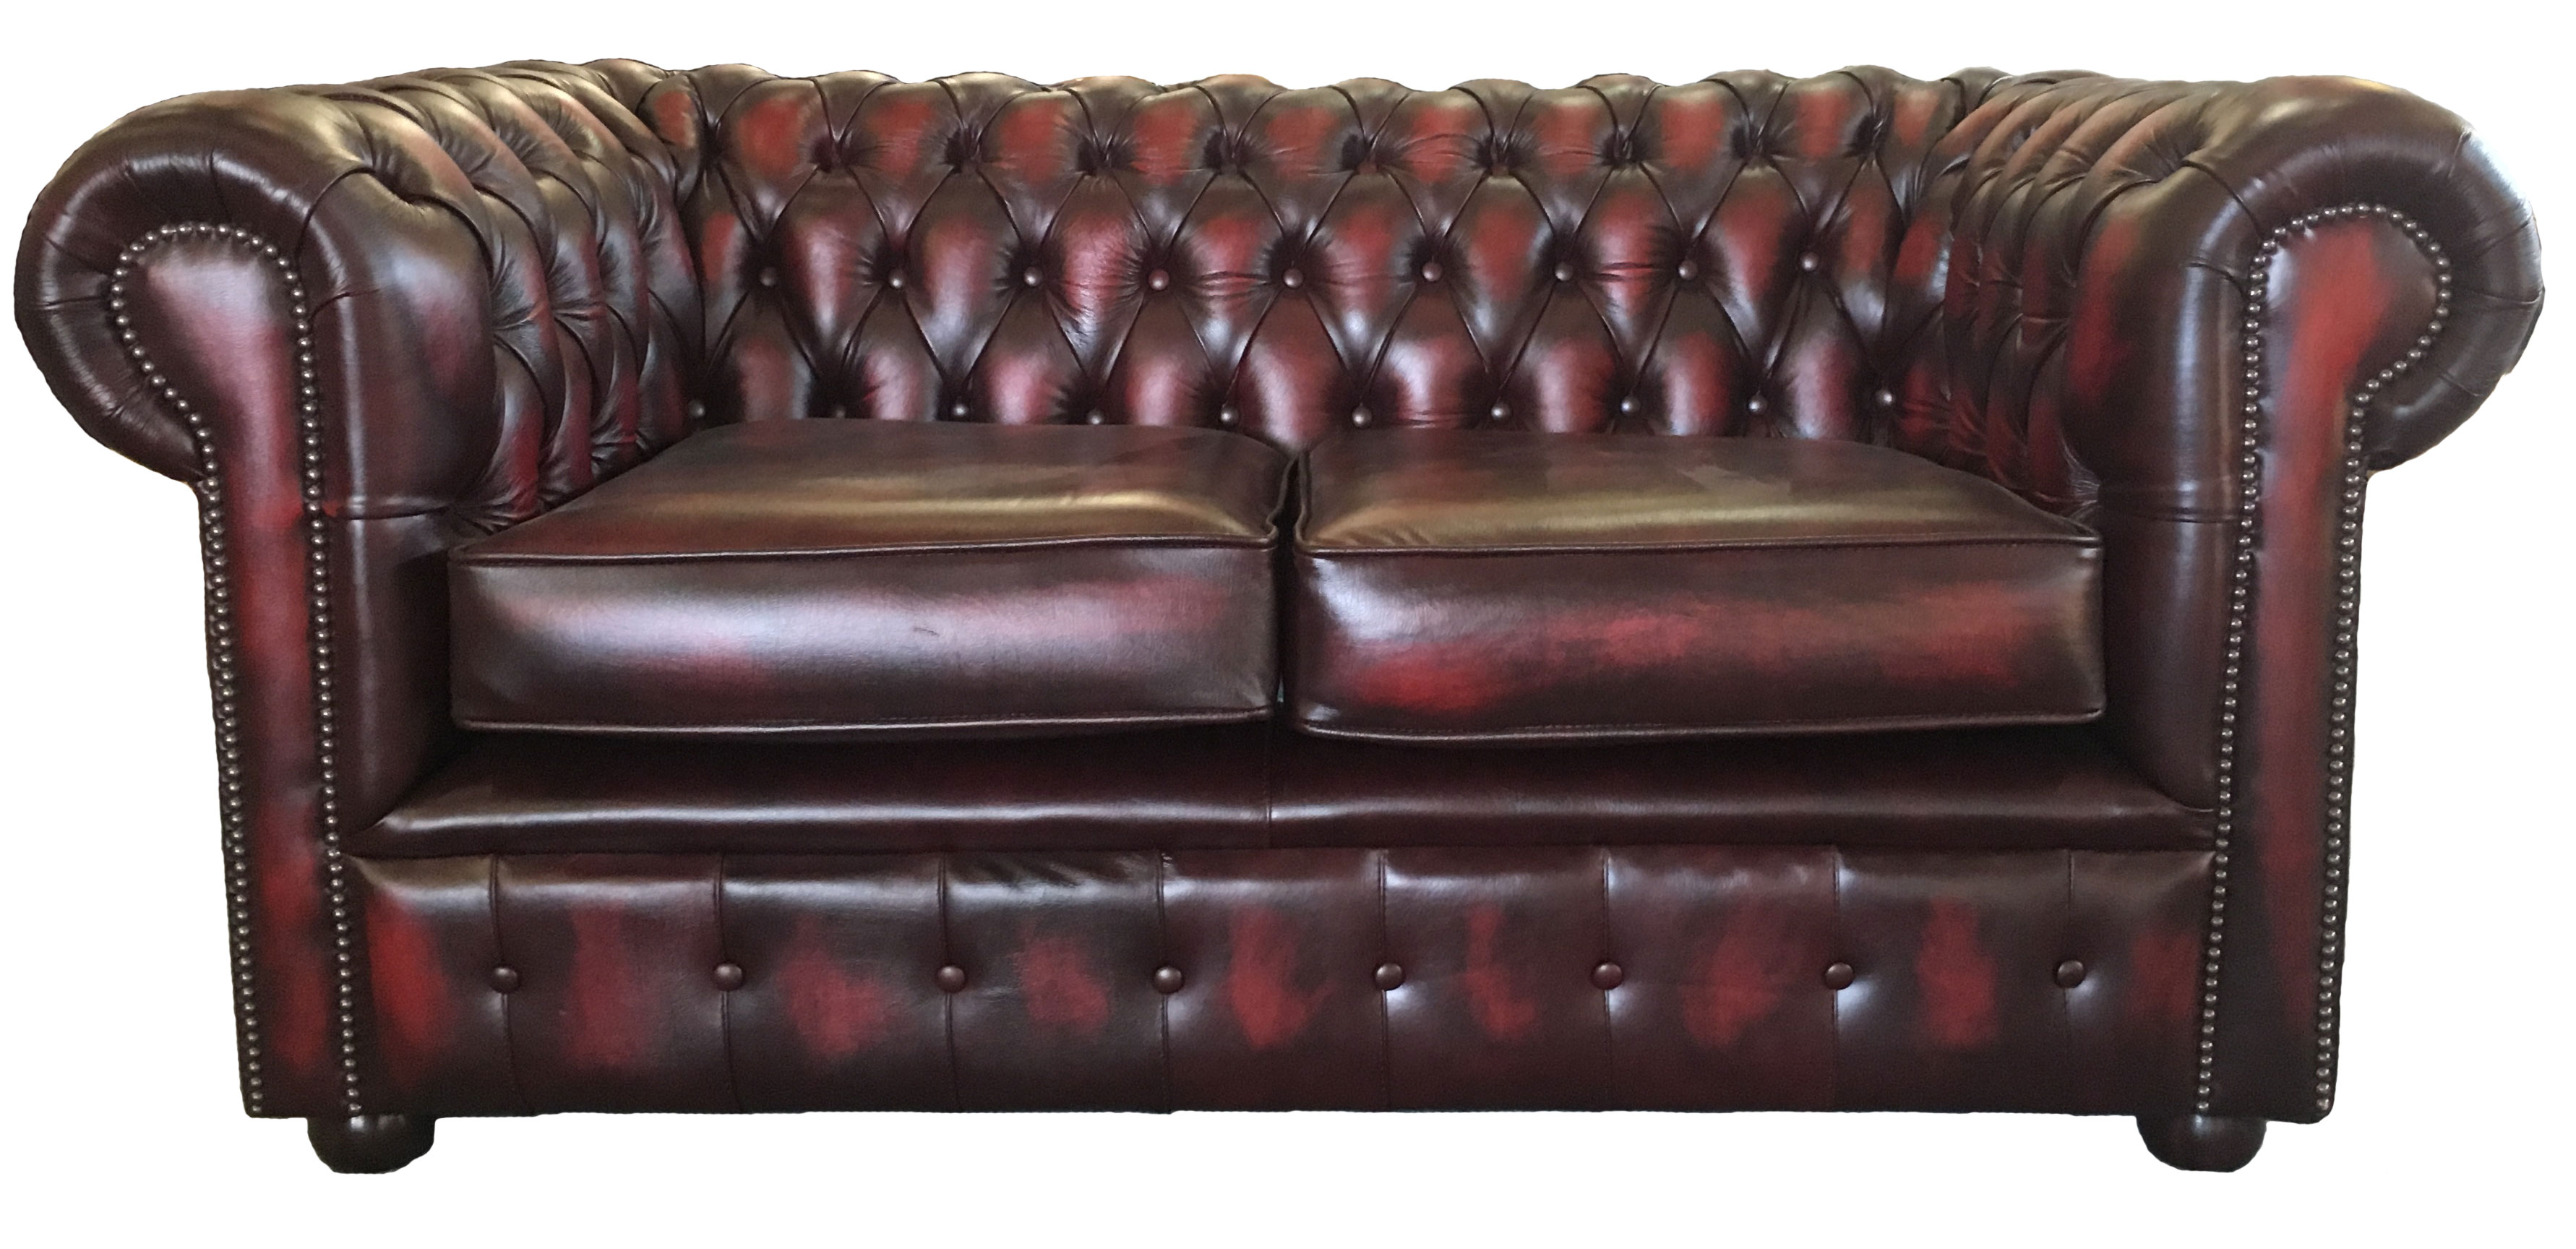 Genuine Leather Chesterfield Three Two Seater Sofa In Antique